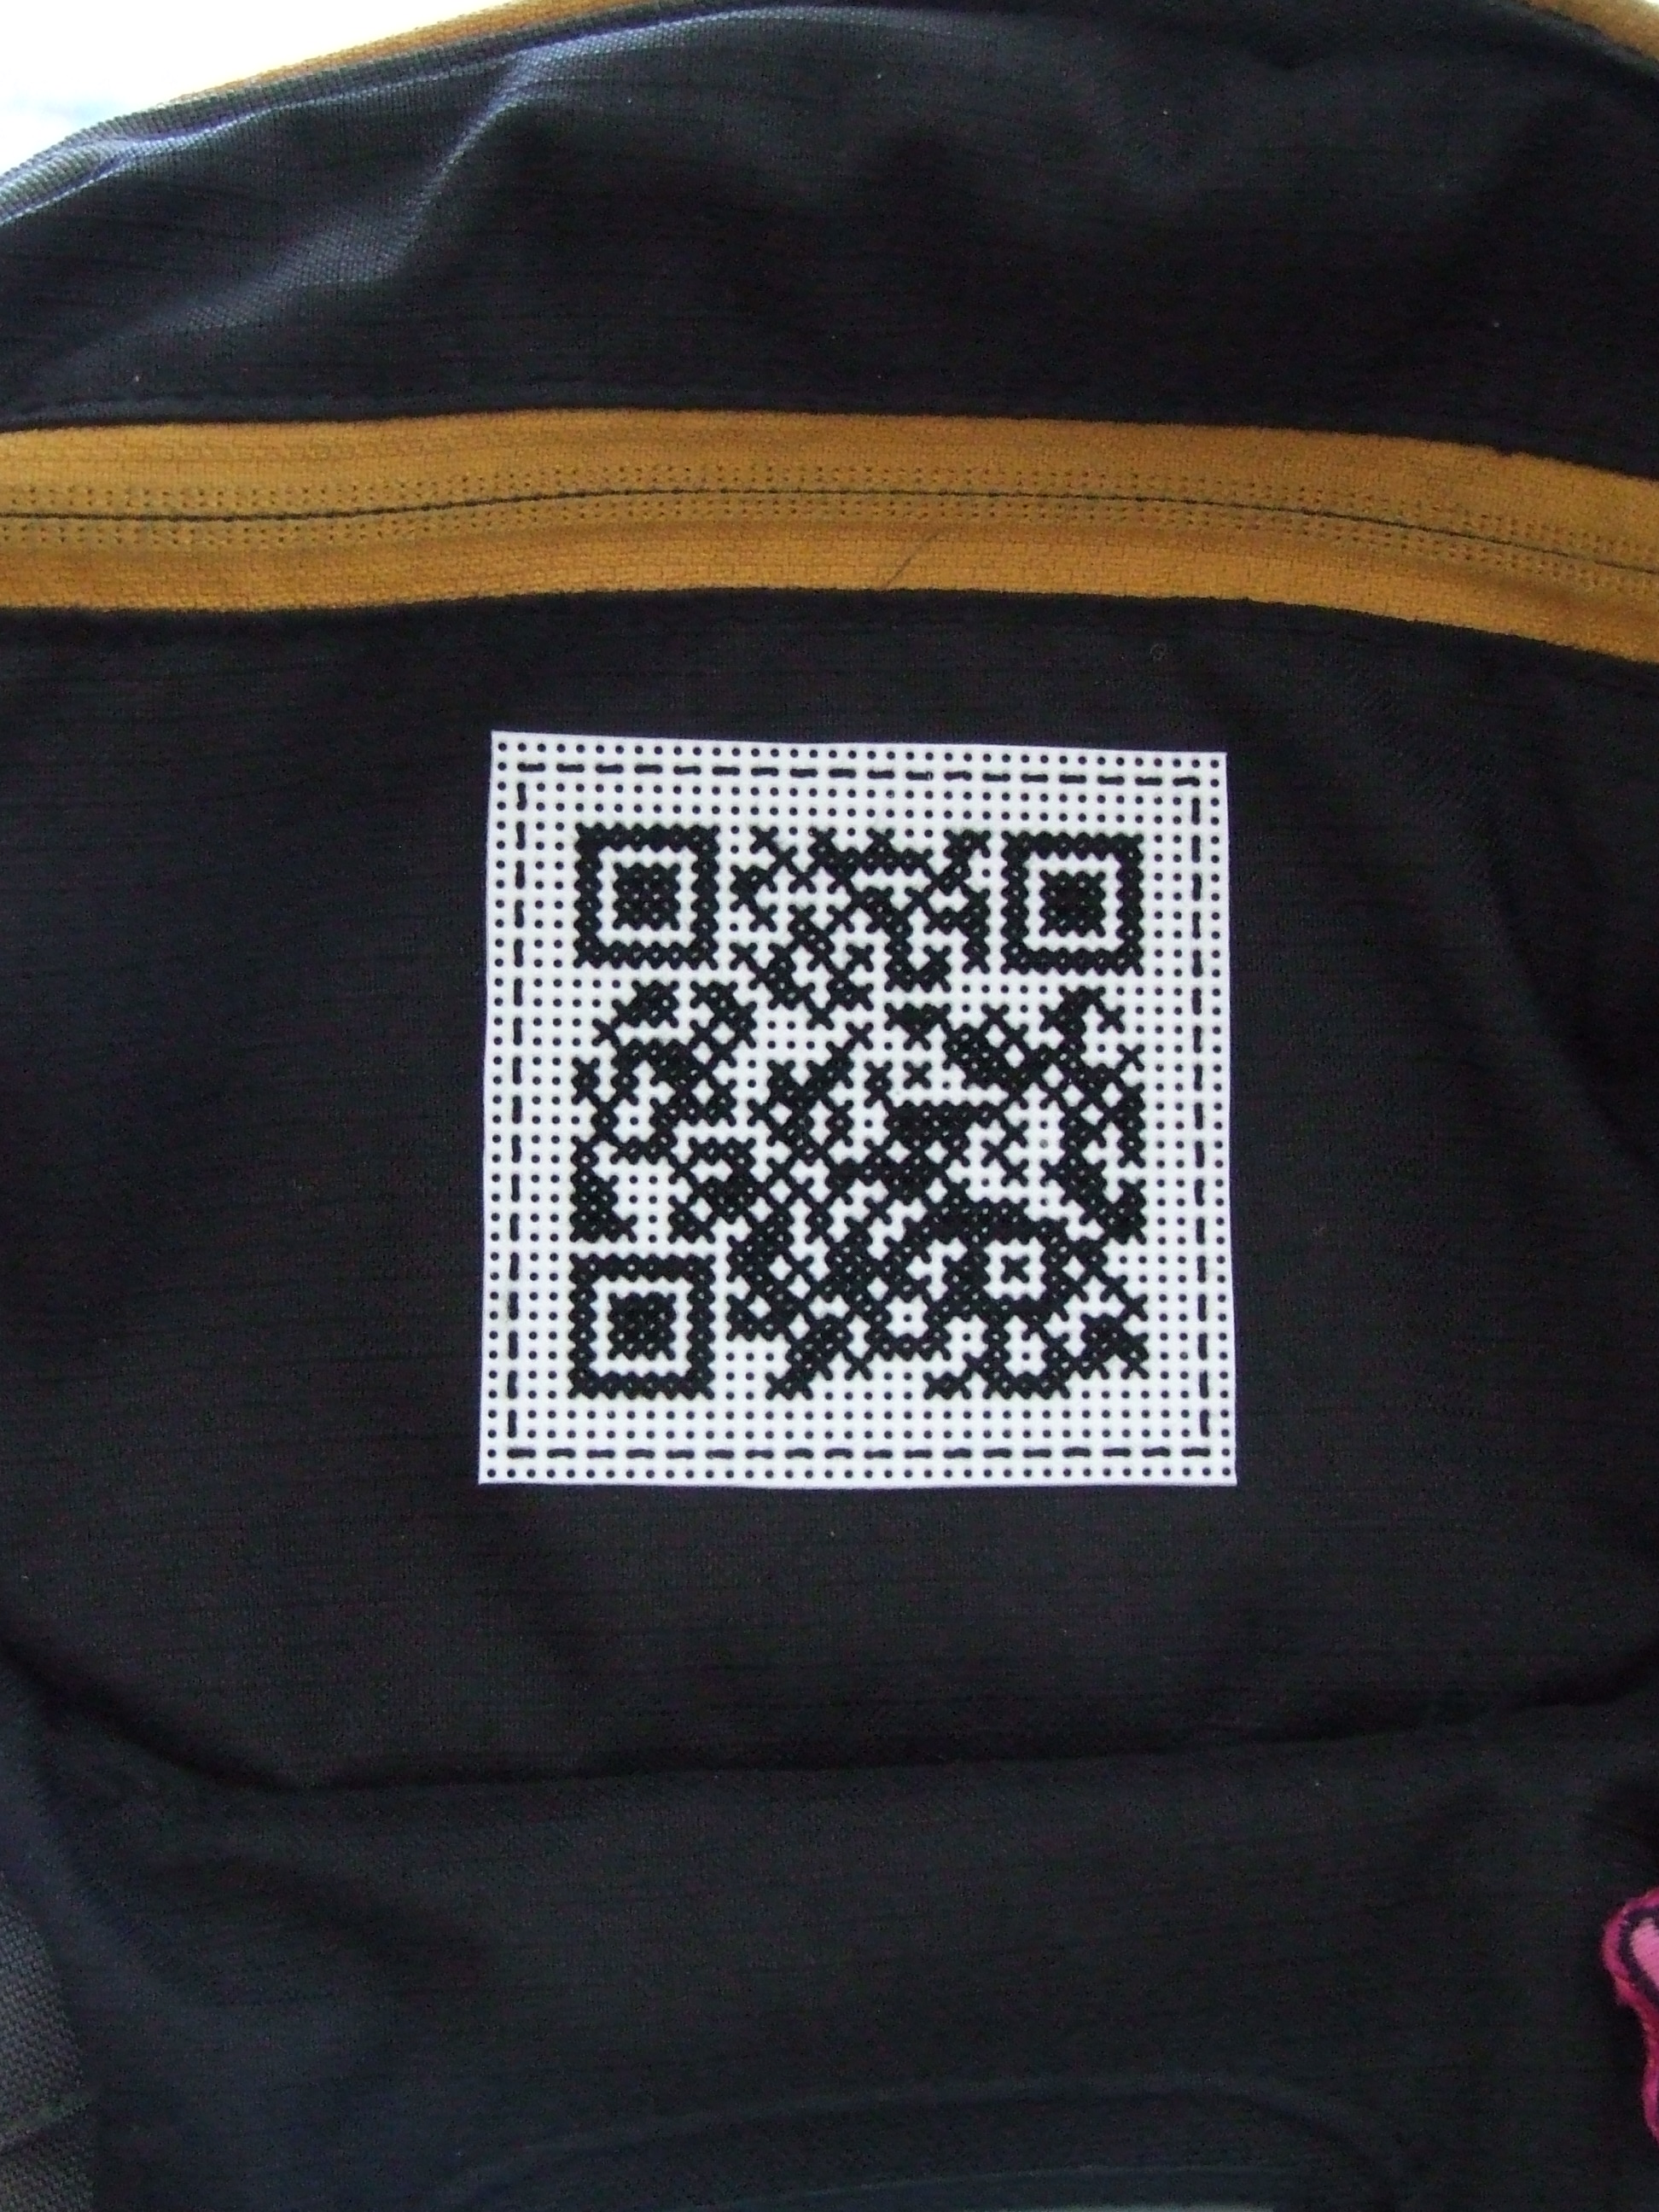 Cross Stitch QR Code